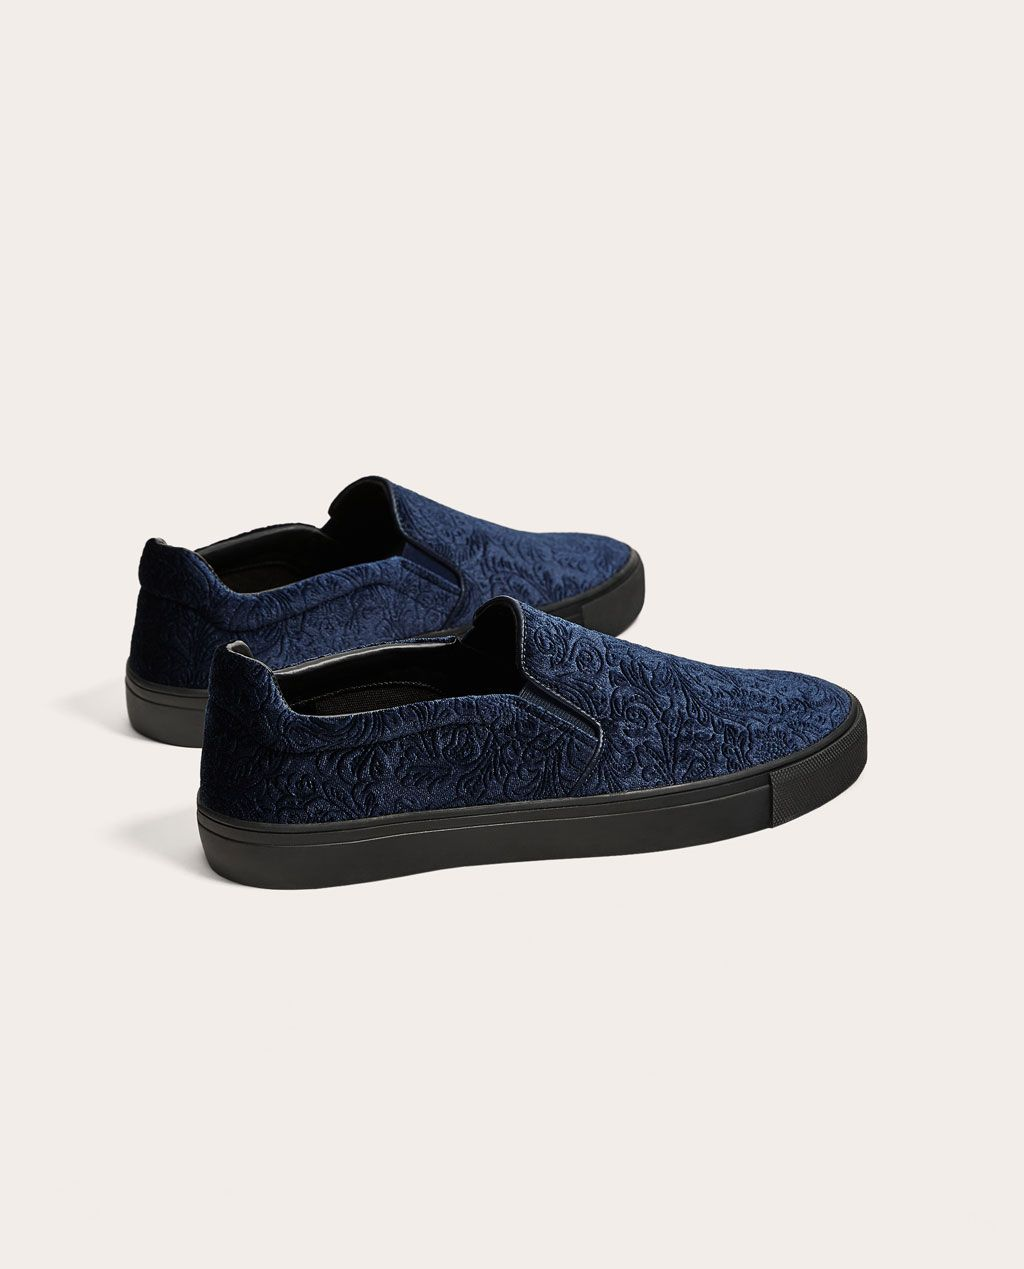 BLUE VELVET SNEAKERS - SHOES AND ACCESSORIES-SALE-MAN